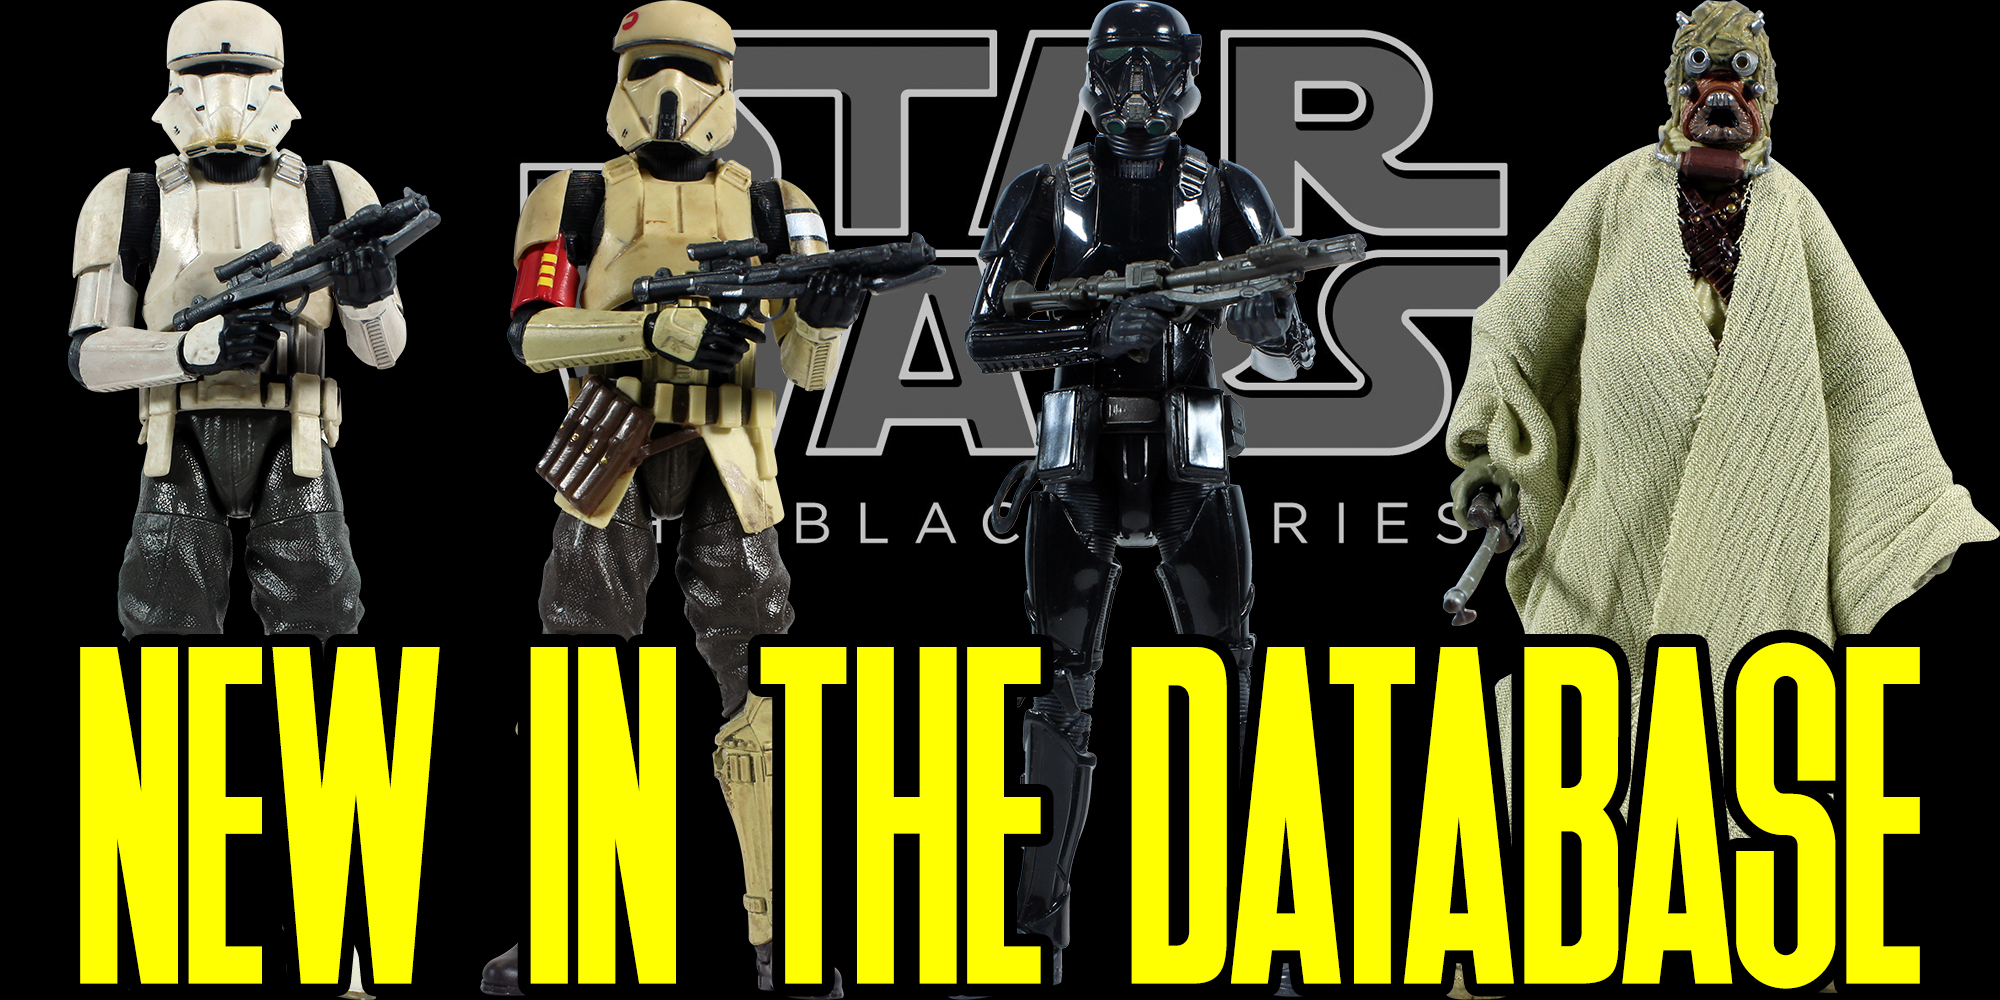 New Black Series figures